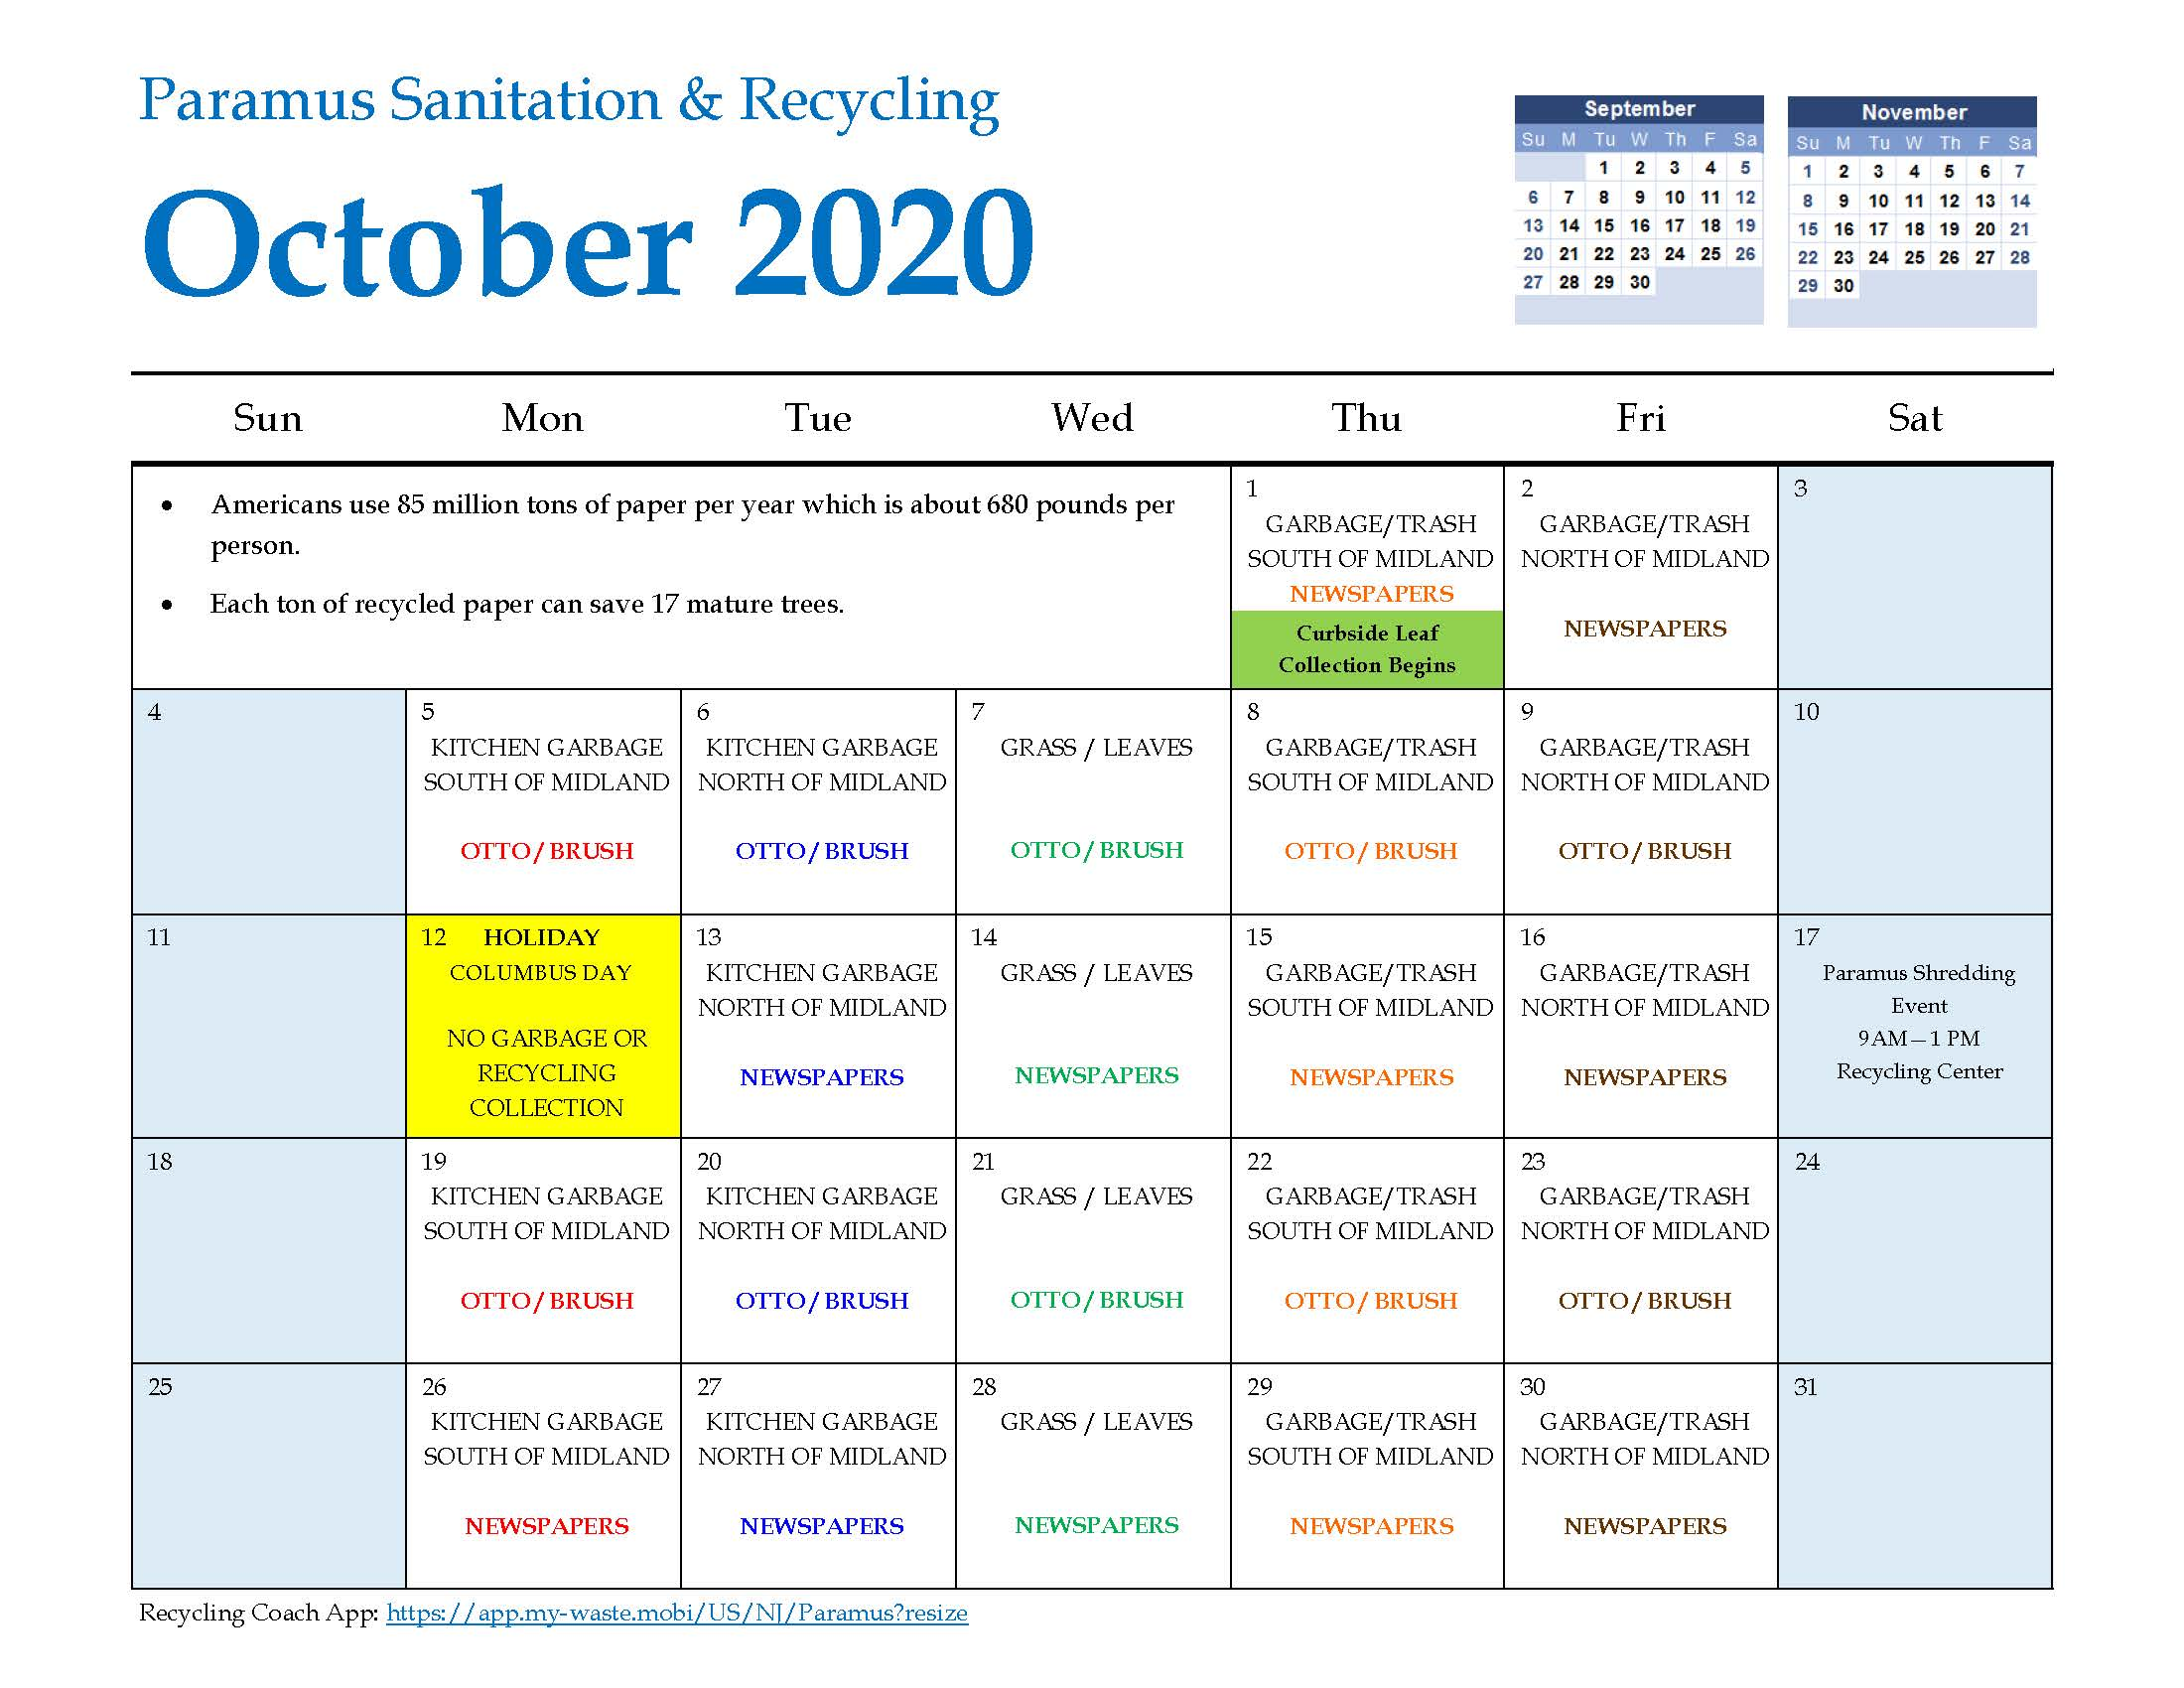 2020 Paramus Recycling Calendar October